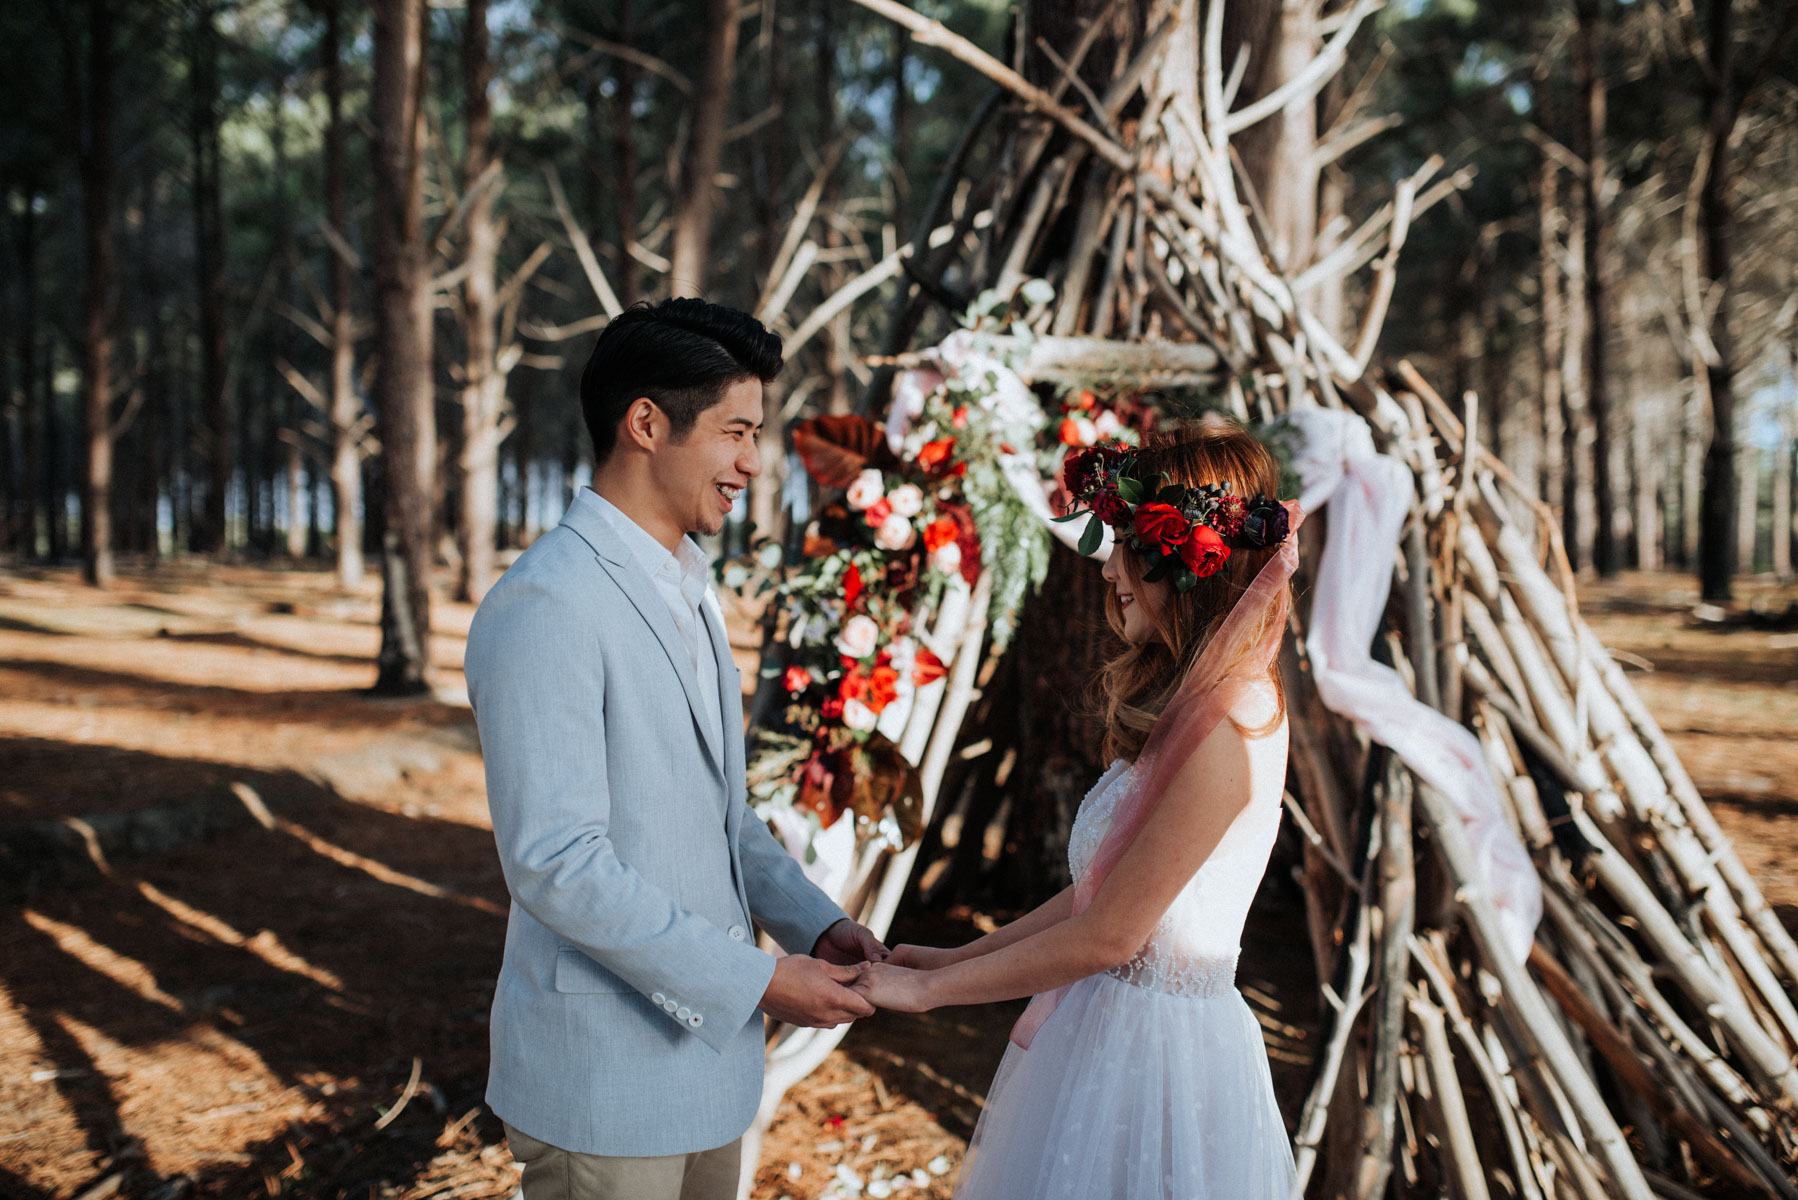 james-julene-forest-elopement-perth-15.JPG